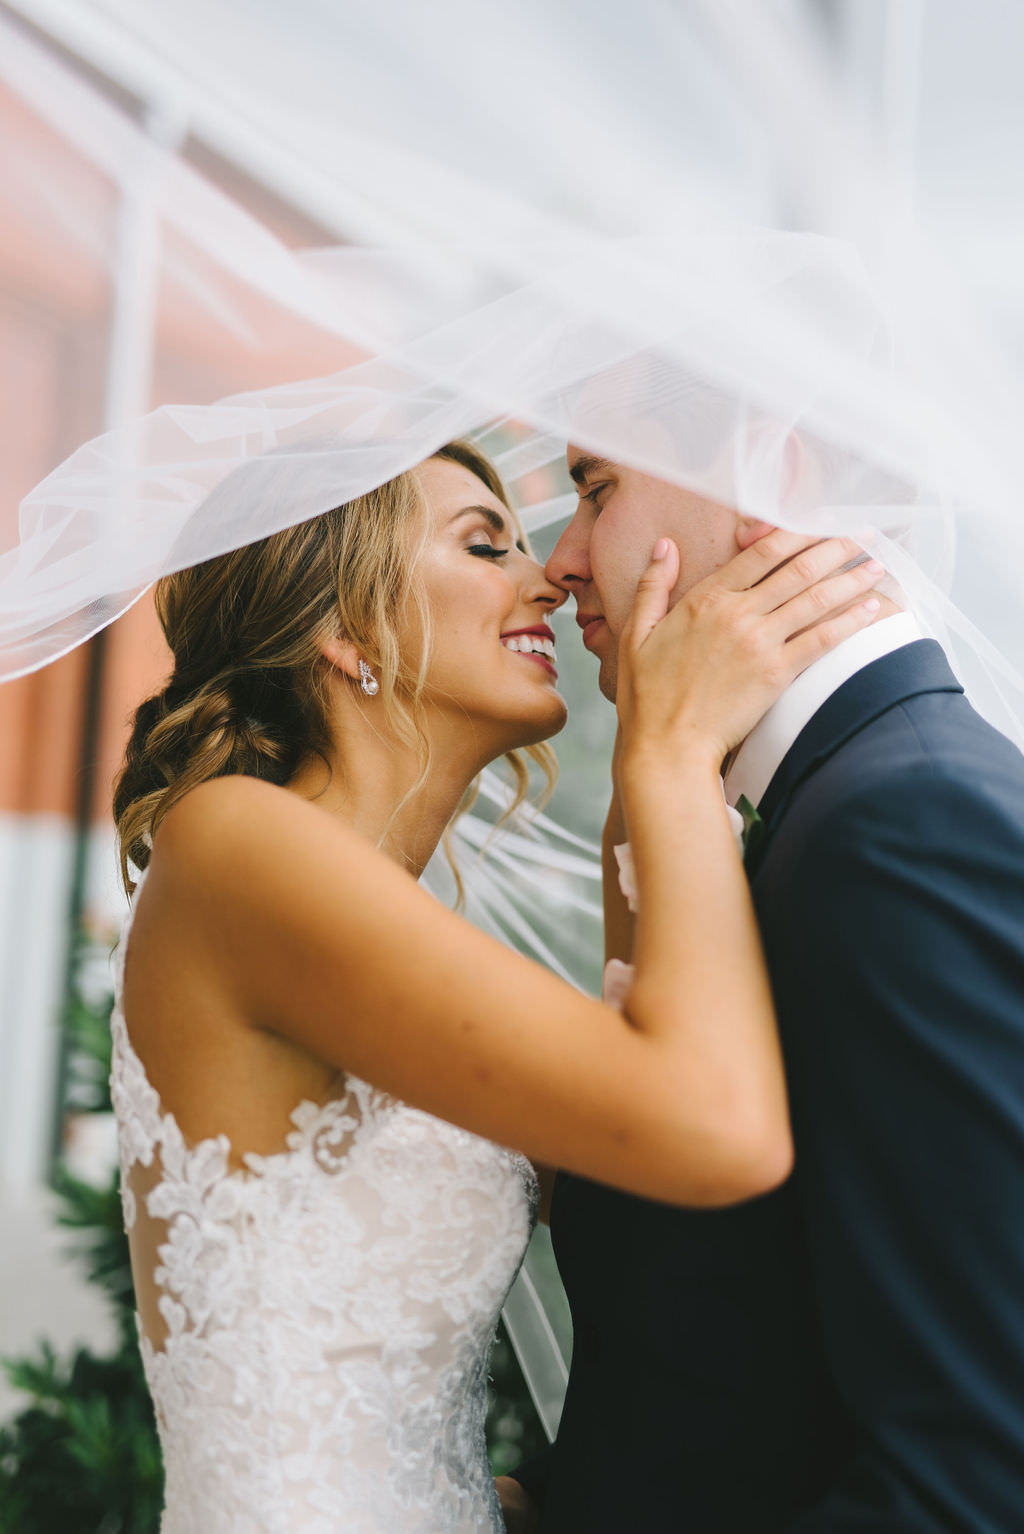 Intimate Bride and Groom Wedding Portrait with Veil Blowing in Wind   Tampa Wedding Photographer Kera Photography